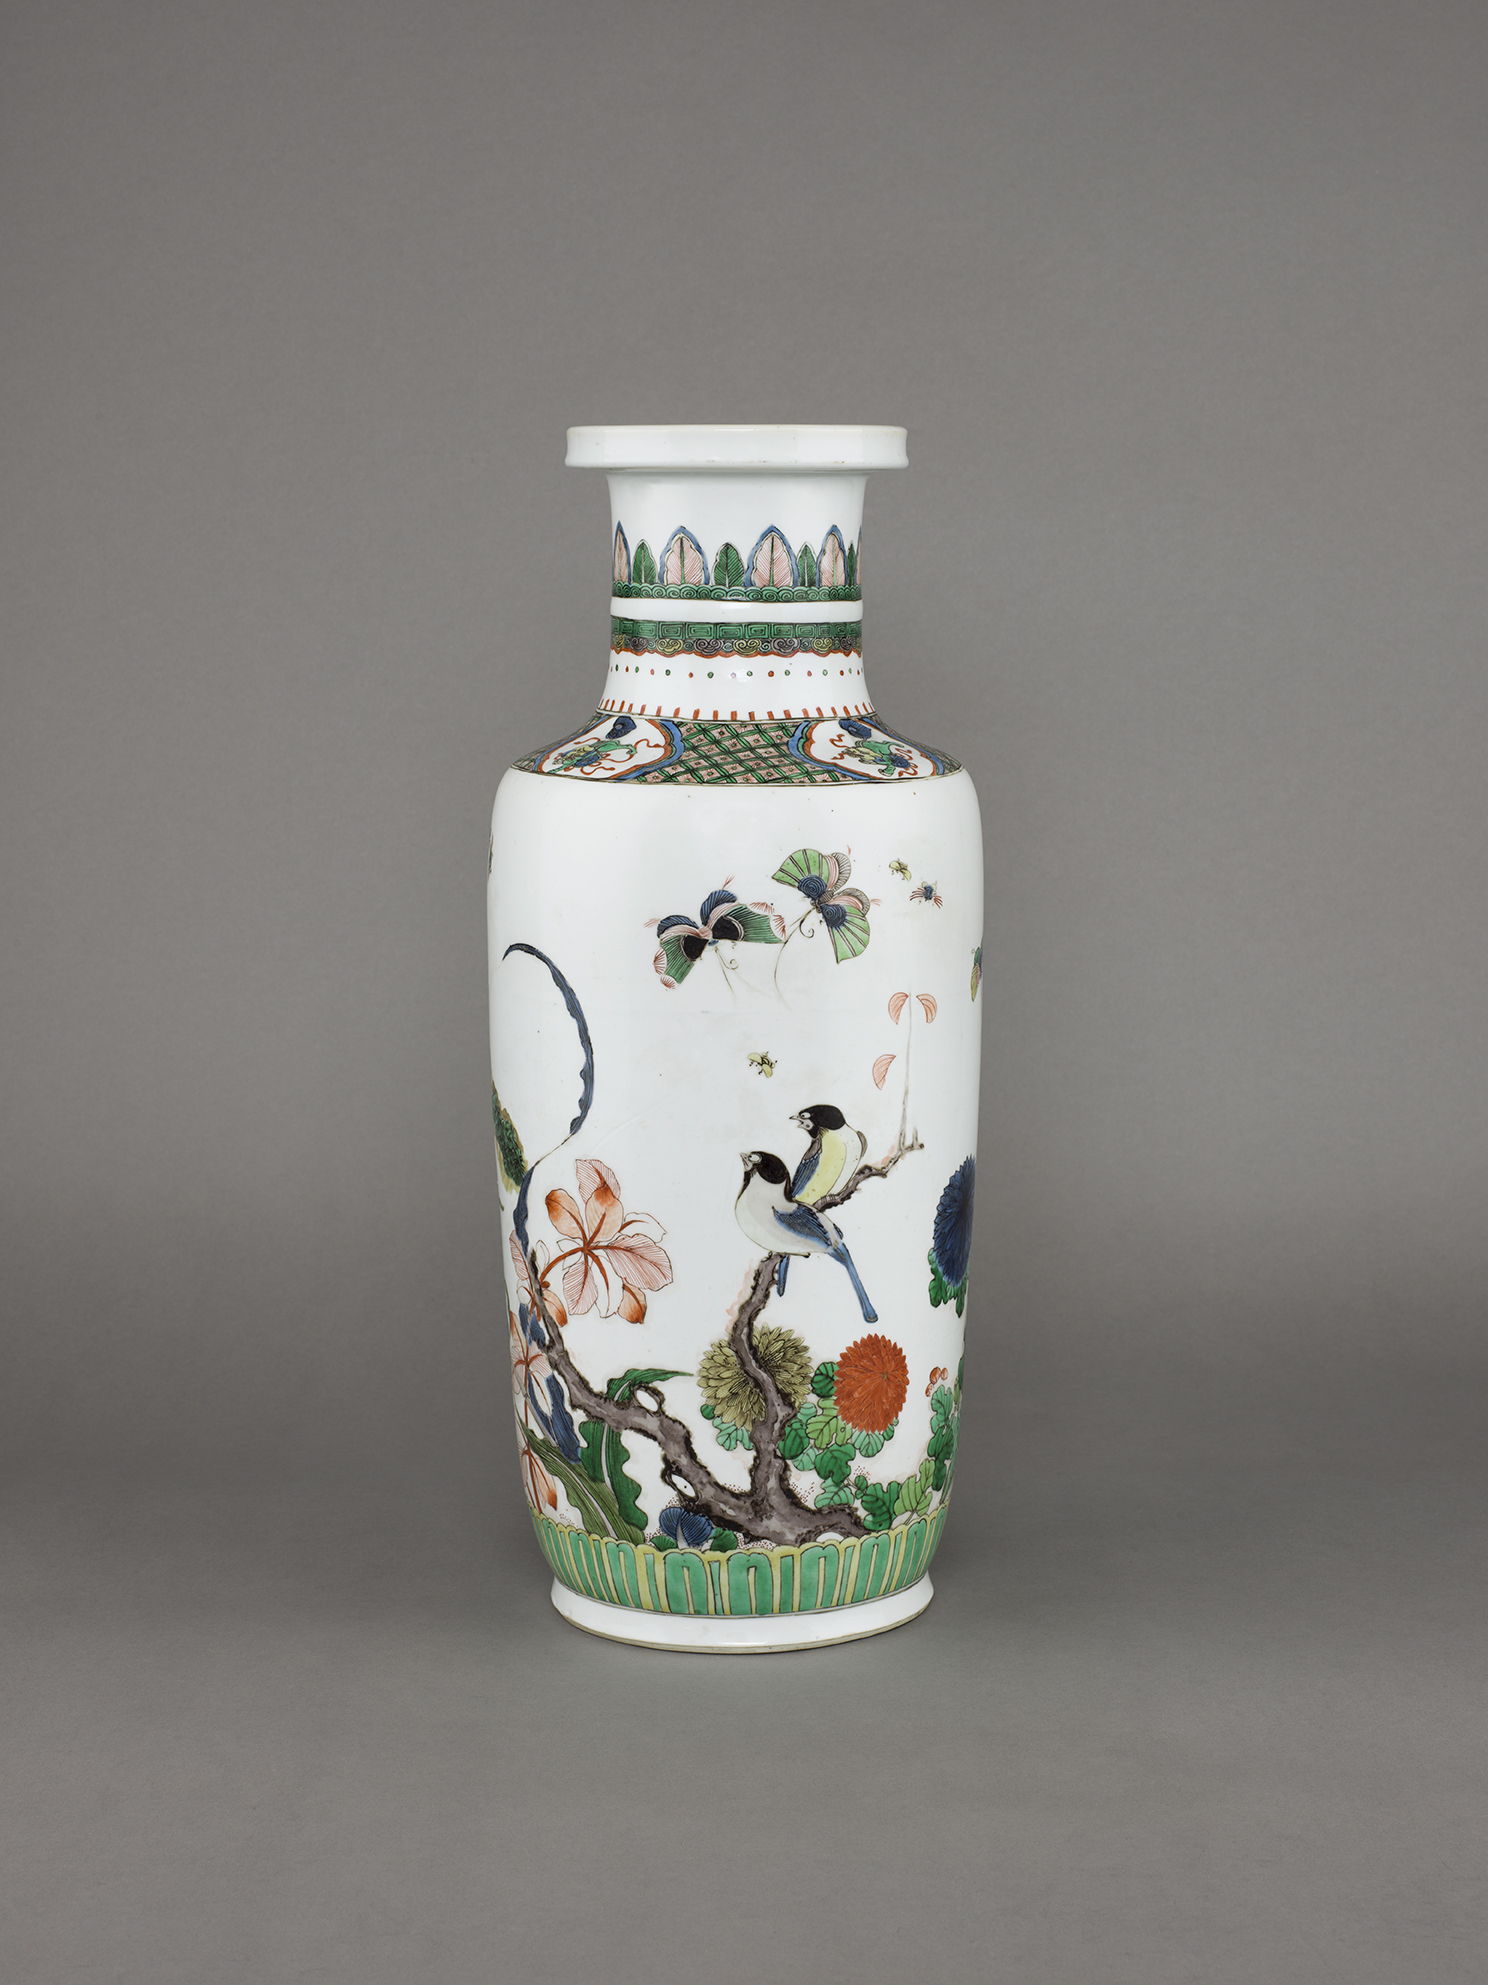 no. 12 - Chinese porcelain famille verte, wucai vase of rouleau form, painted with two birds on a branch amongst flowers, butterflies, dragonflies and other insects. 18 ¾ inches, 47.6 cm high. Kangxi, 1662-1722.